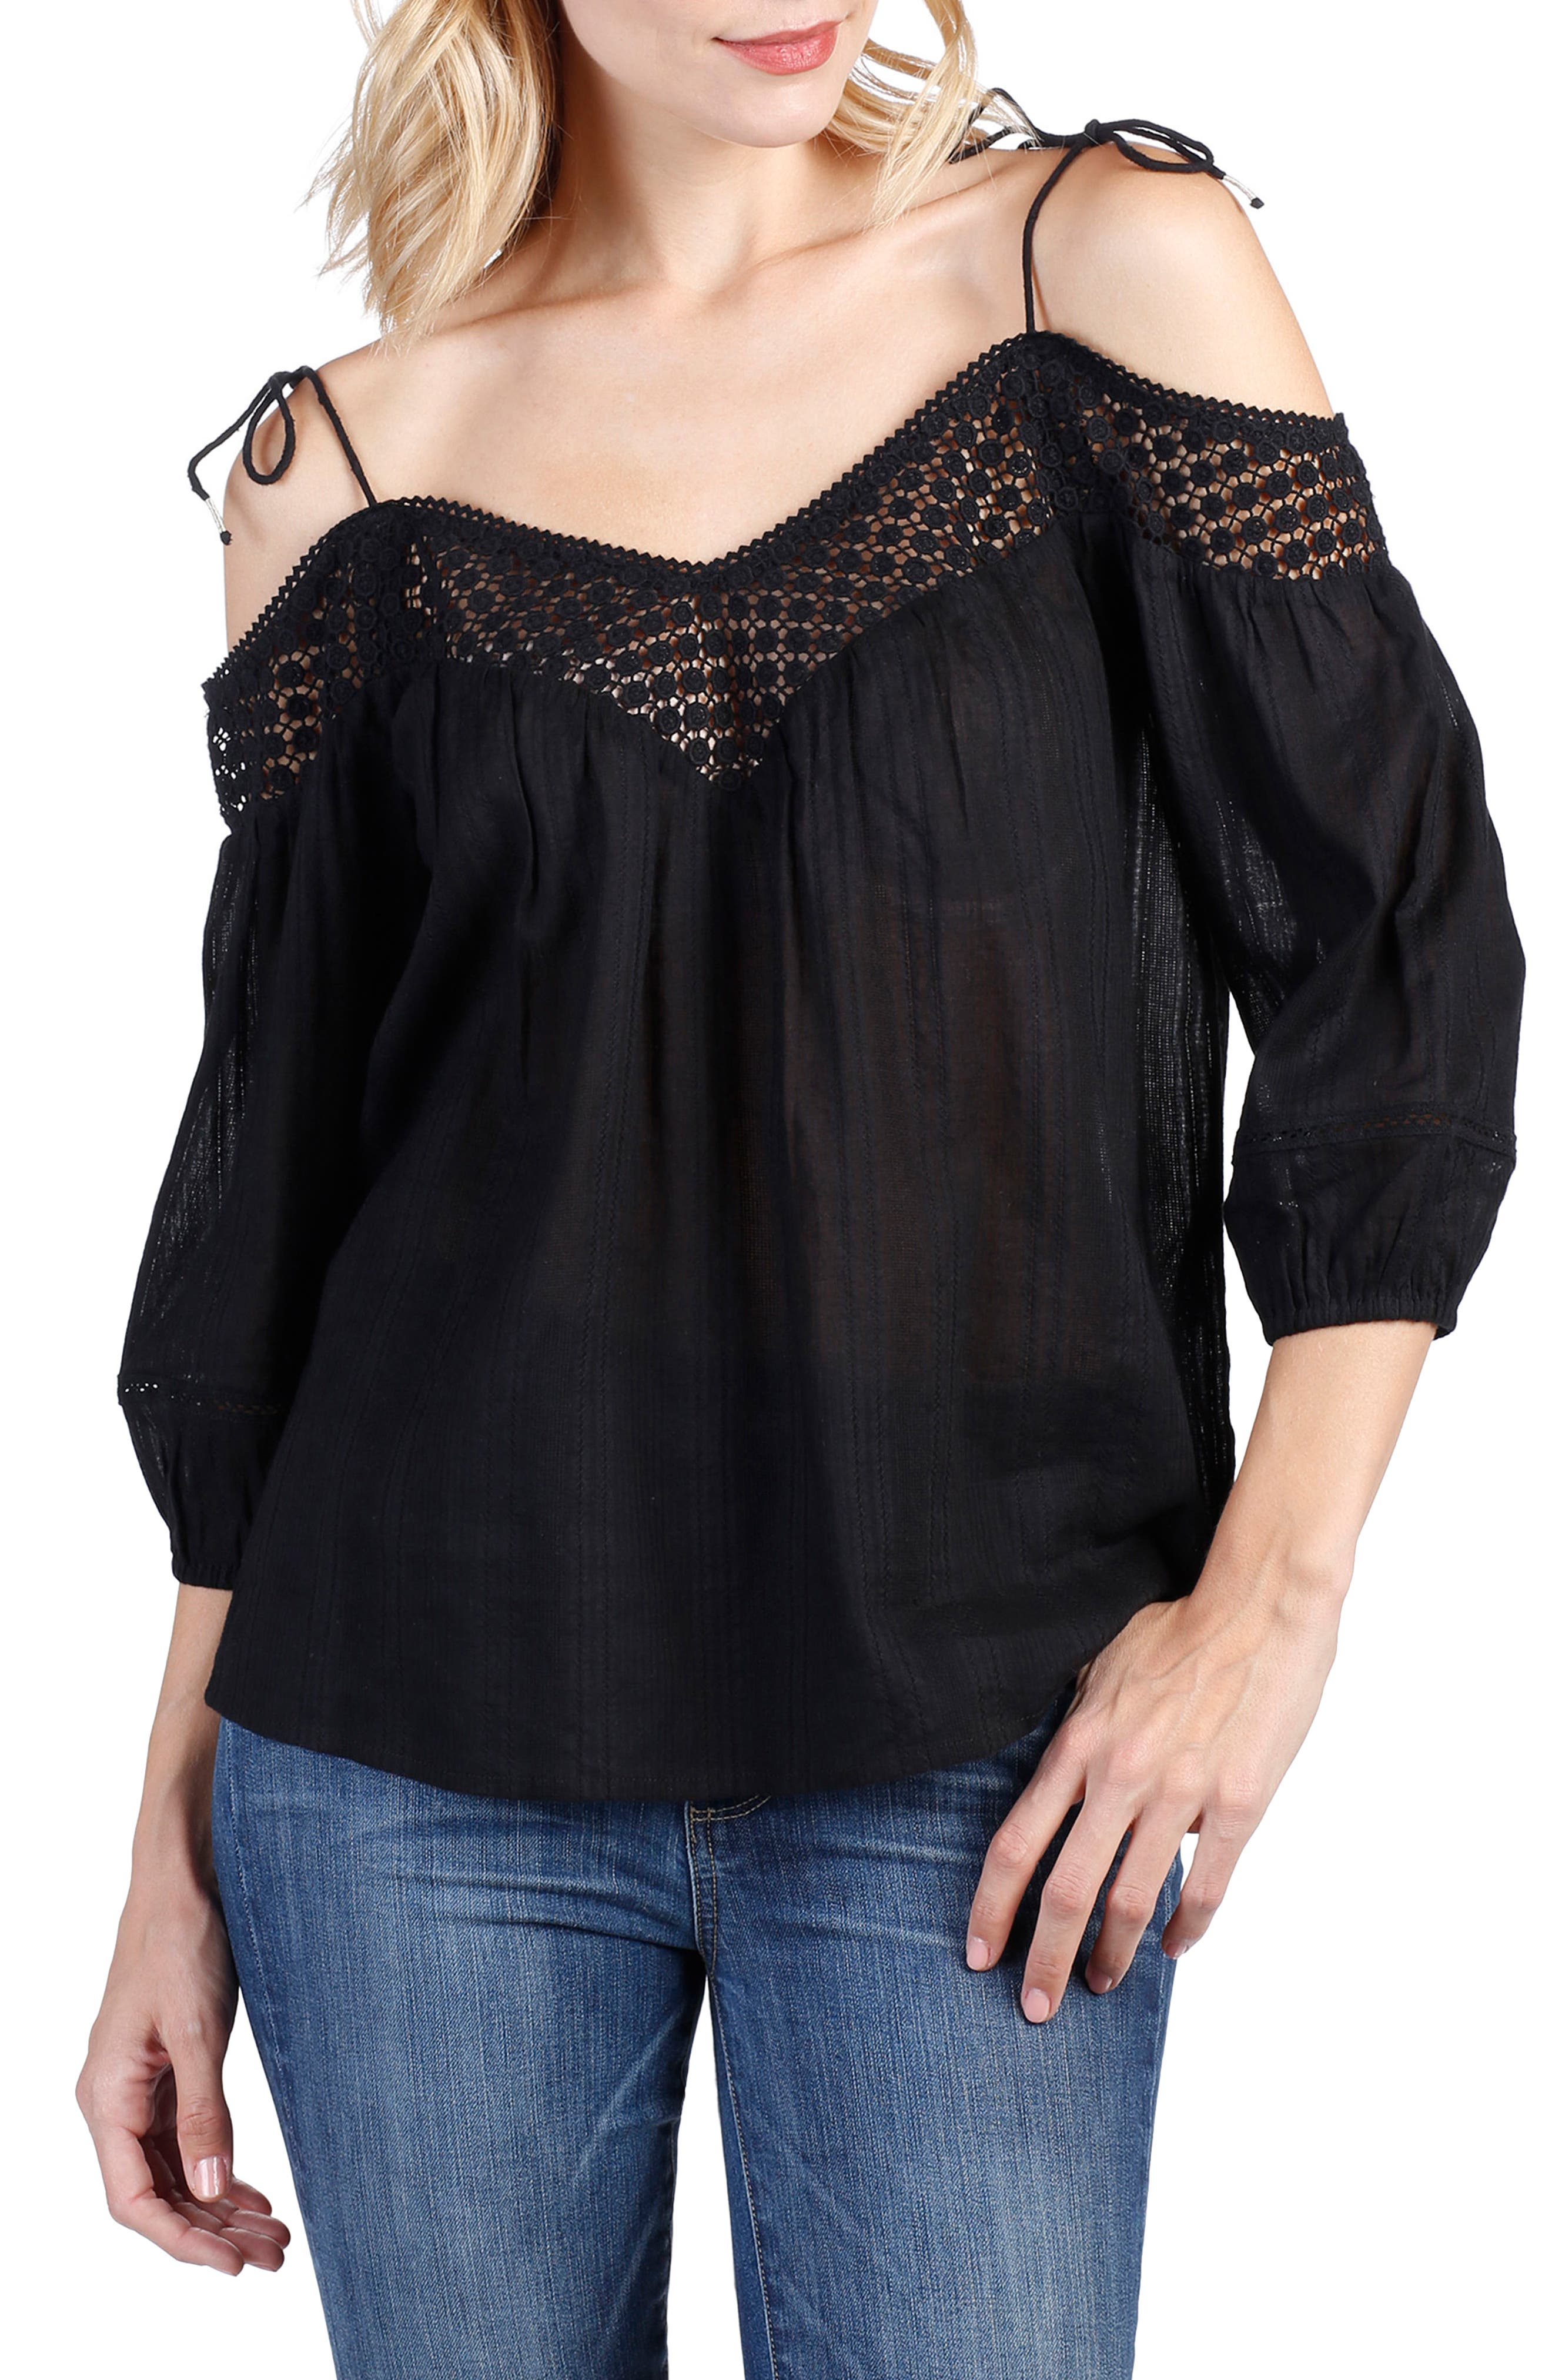 Polly Off the Shoulder Blouse,                             Main thumbnail 1, color,                             Black